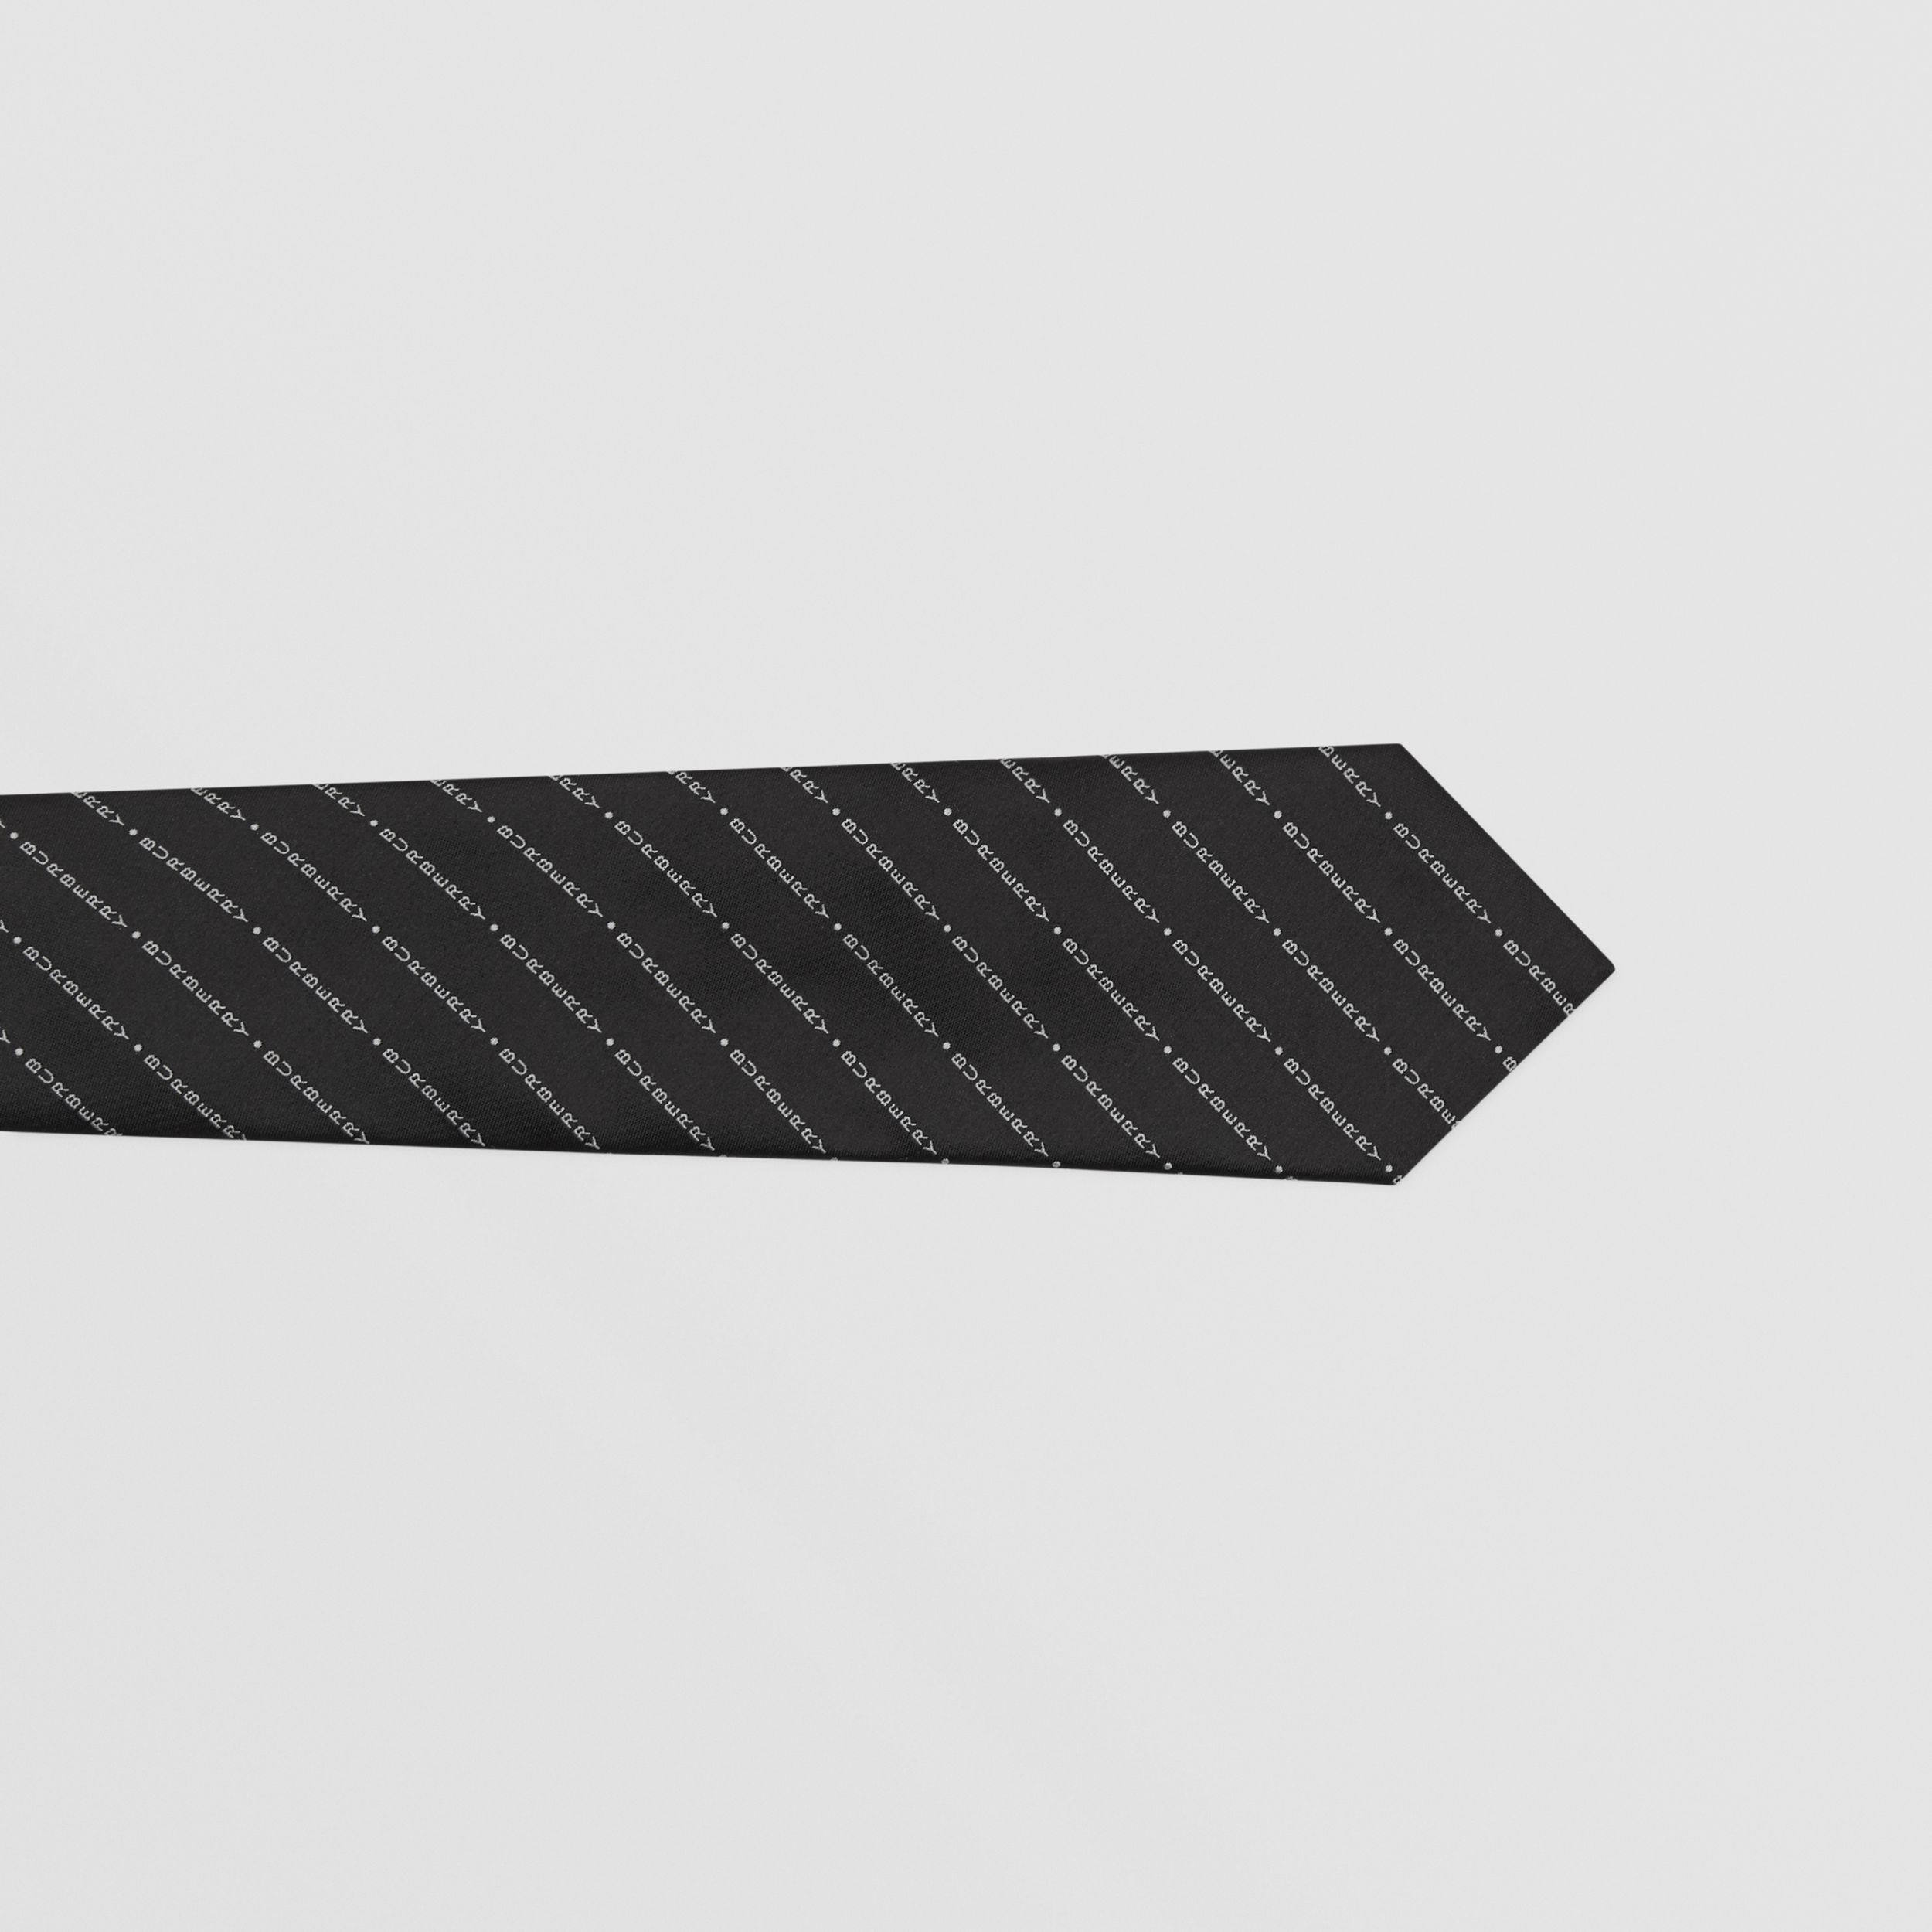 Classic Cut Logo Silk Jacquard Tie in Black - Men | Burberry - 2